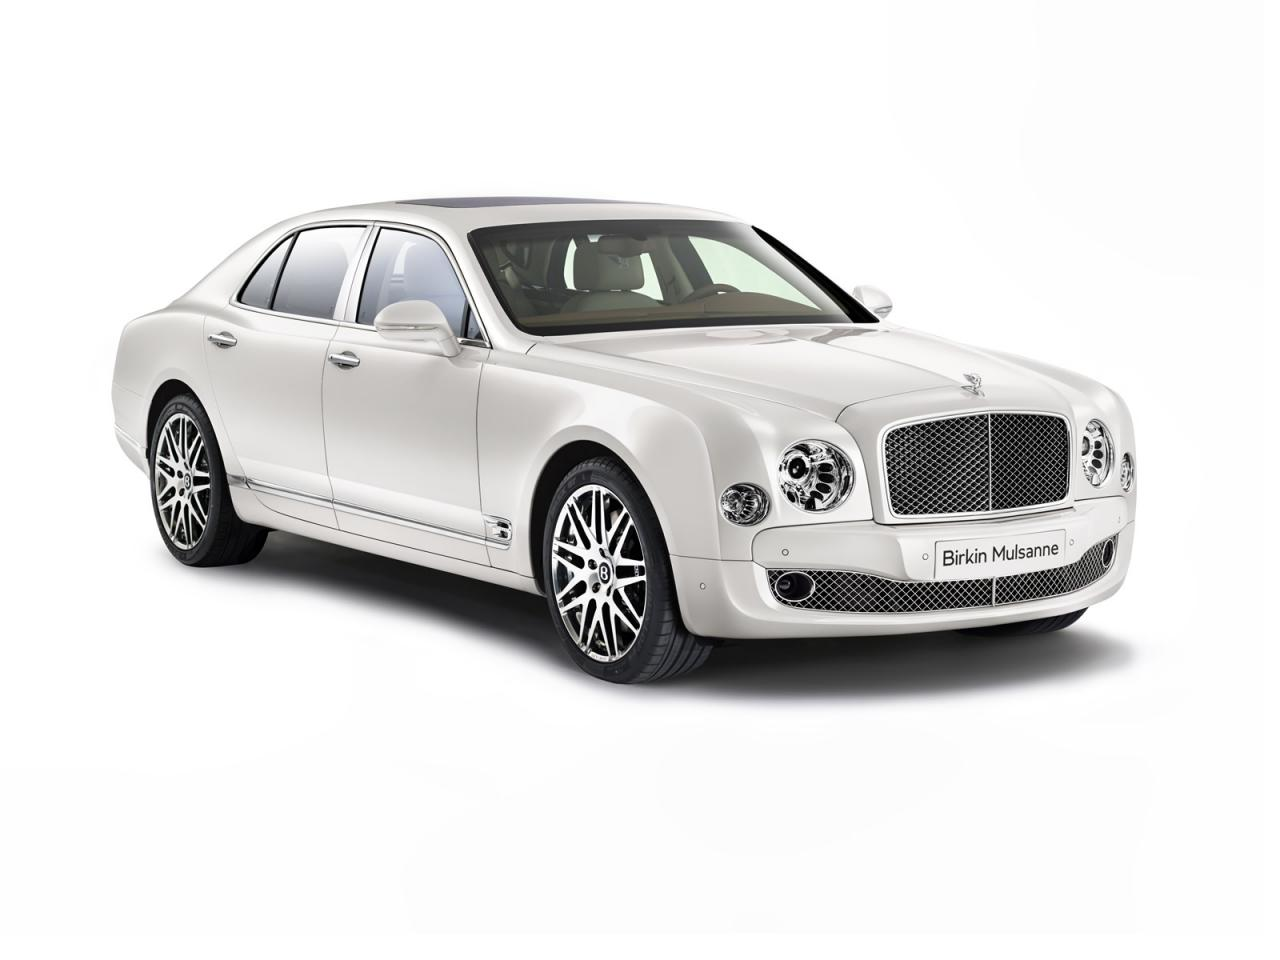 Bentley-Mulsanne-Birkin-1